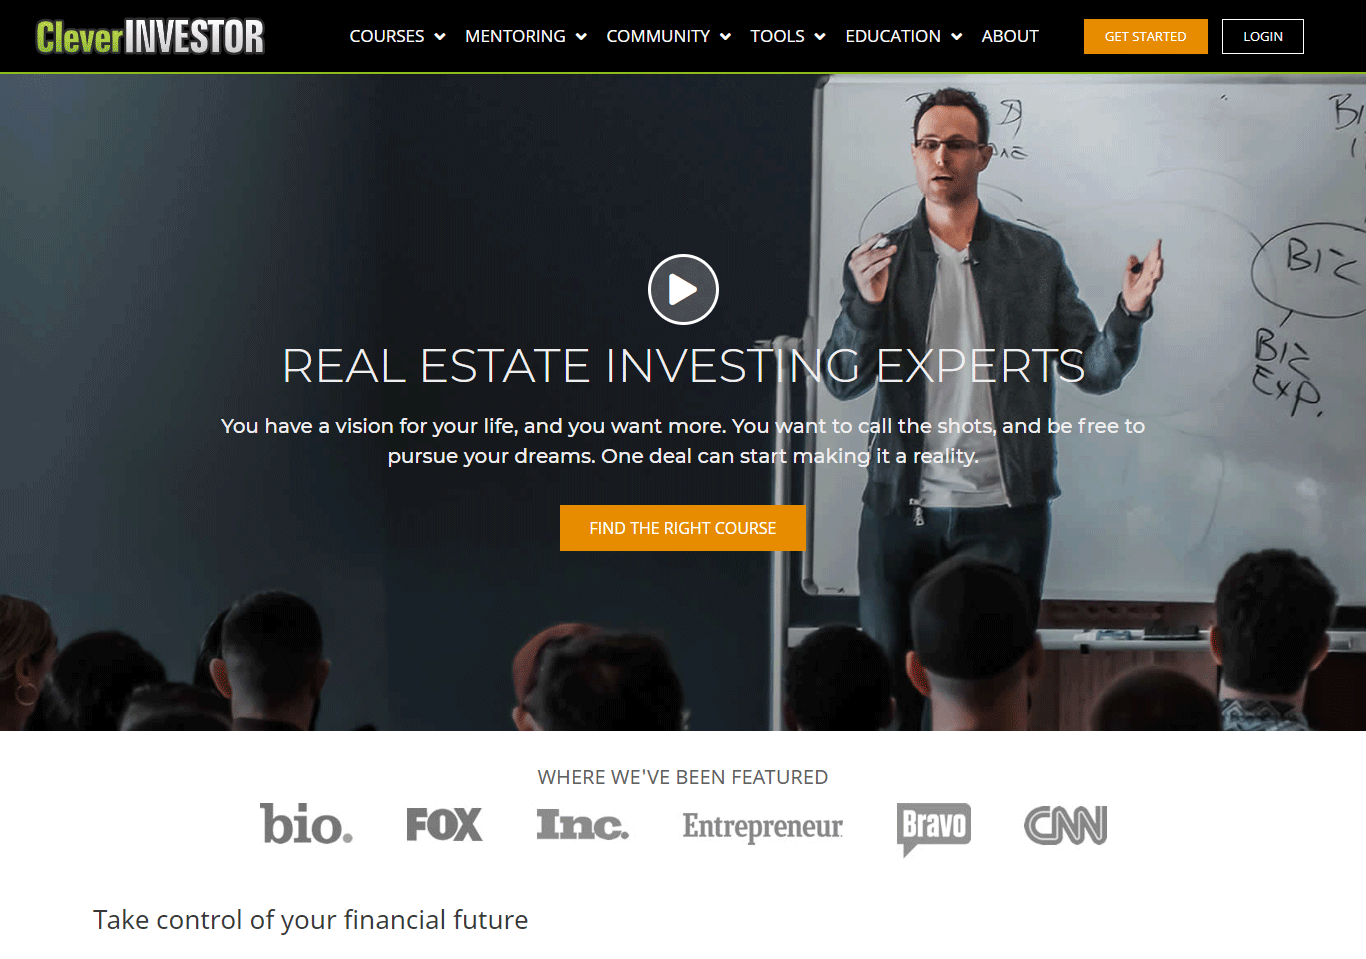 Clever Investor